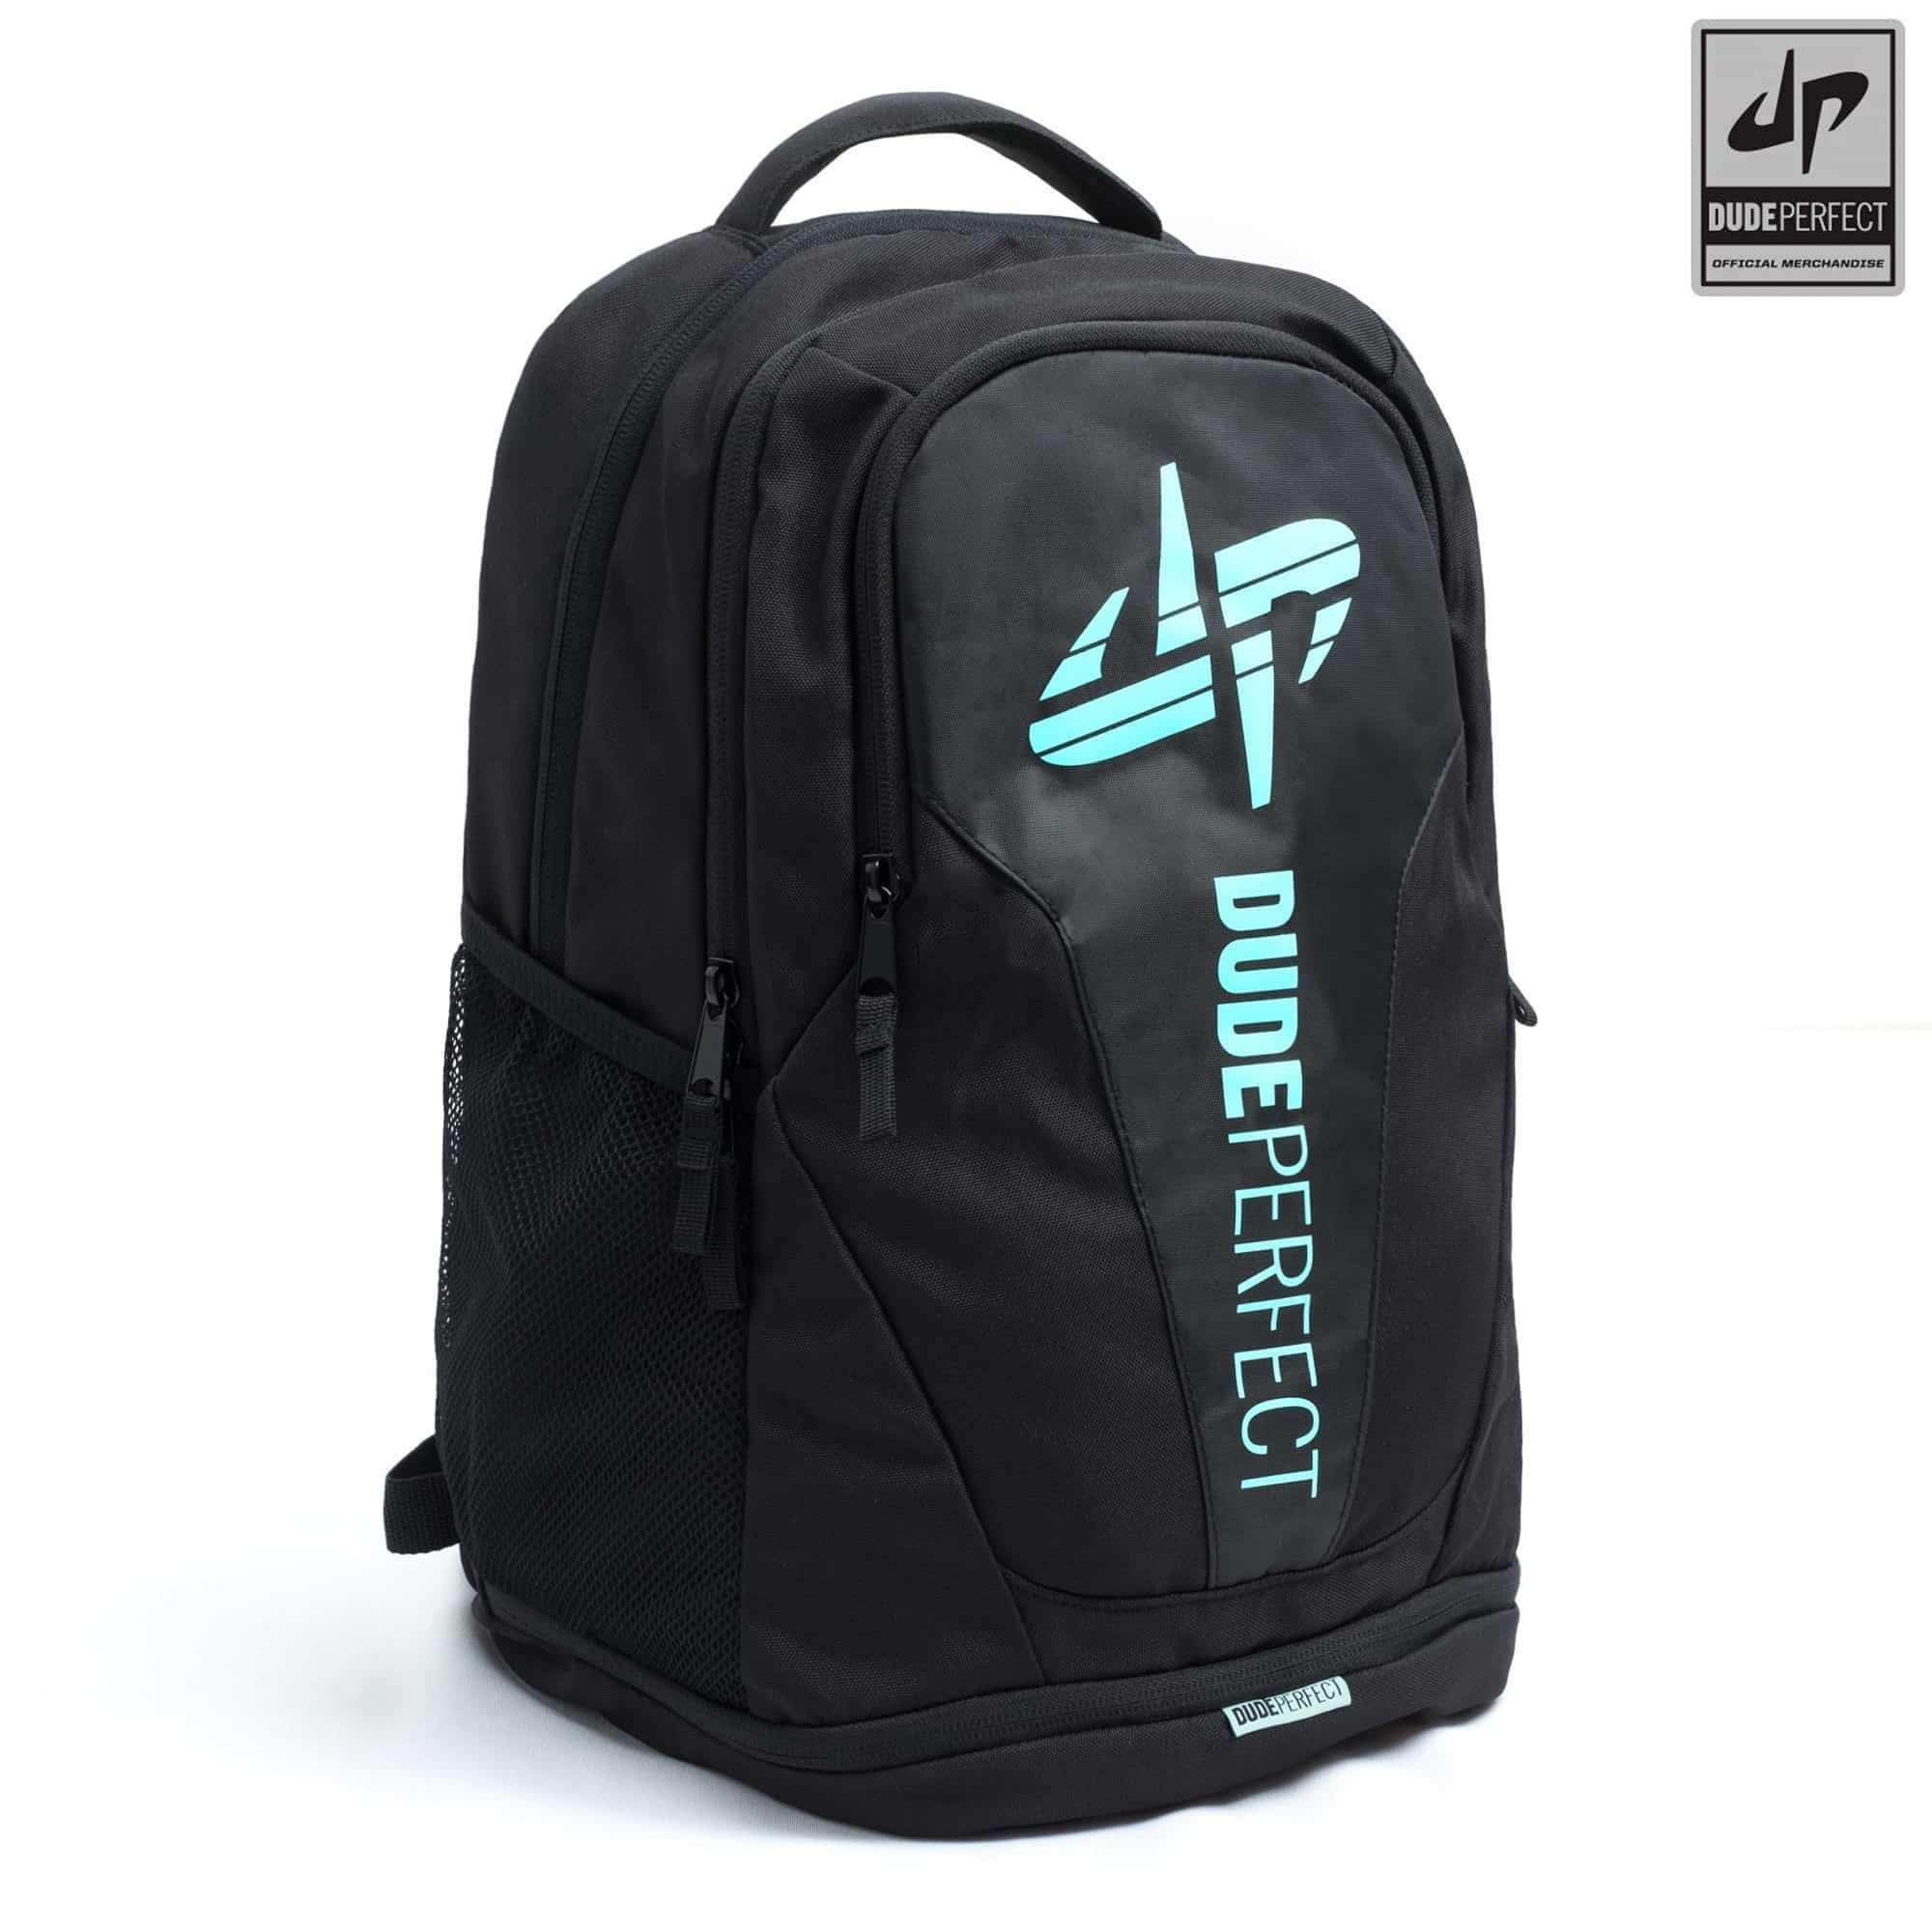 585a632580 Dude Perfect Backpack III - Black + Green